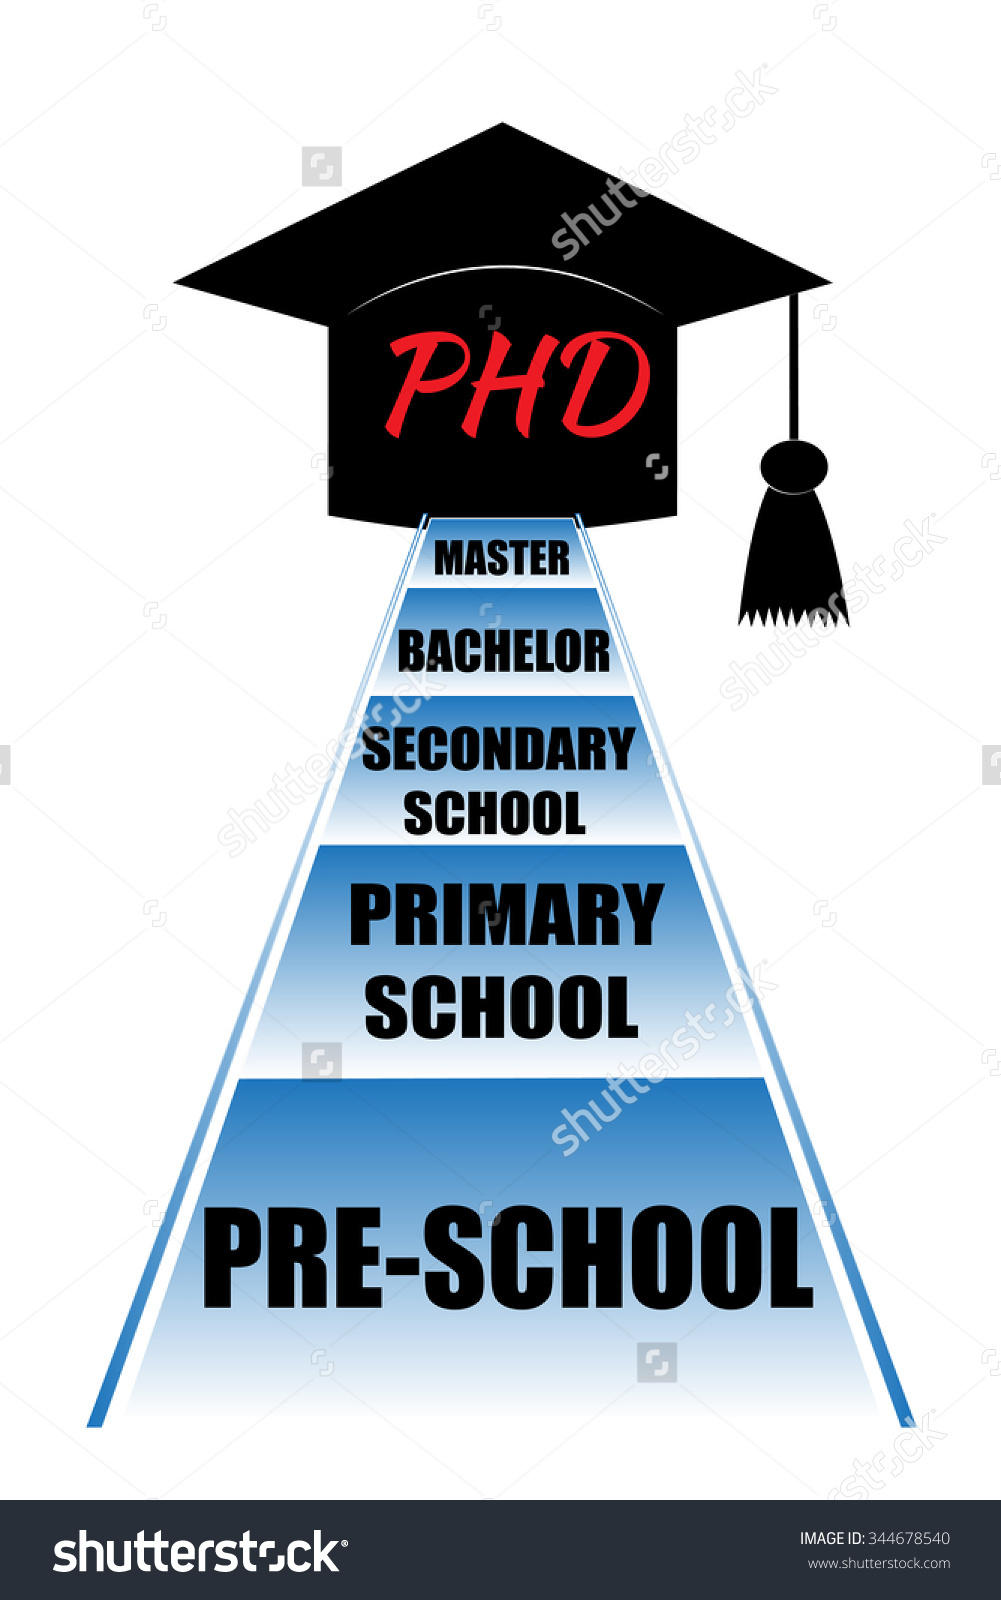 Phd Degree Clipart.